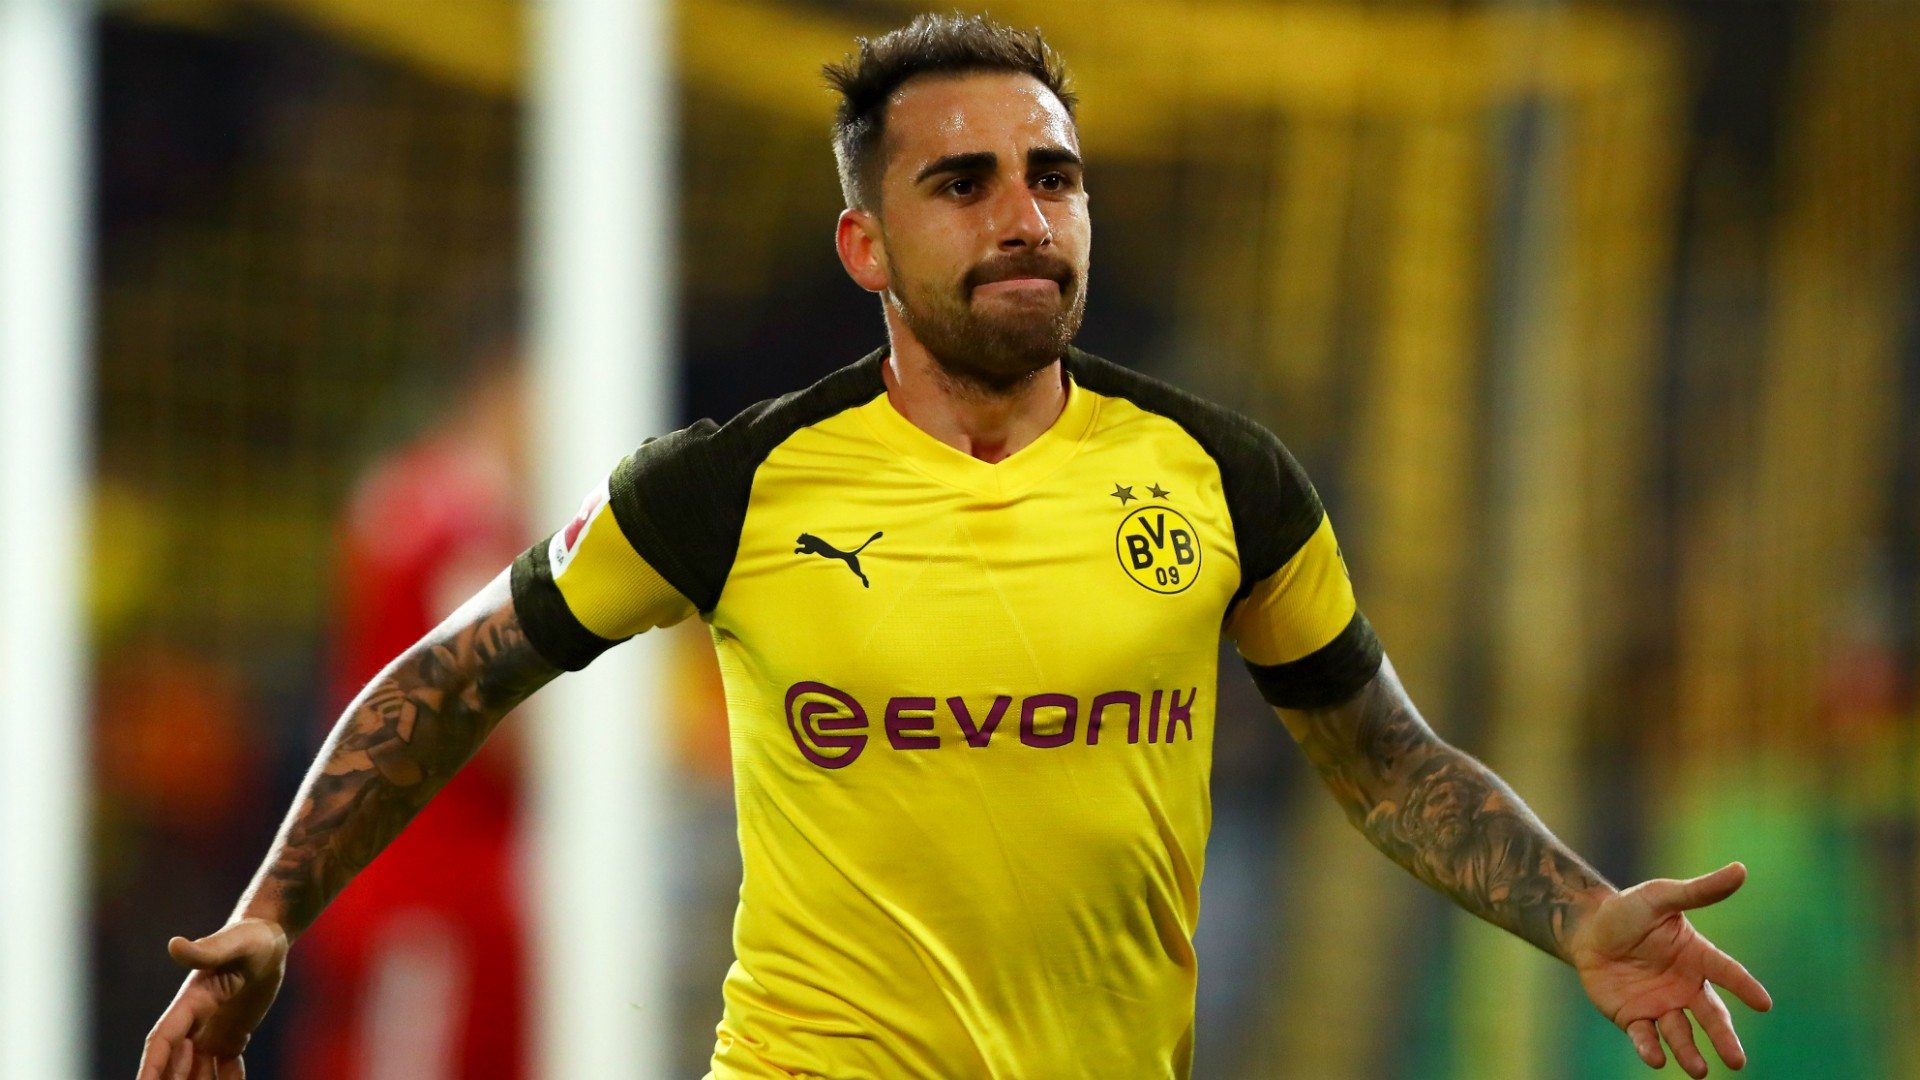 Borussia Dortmund 3-2 Bayern Munich [Bundesliga Highlights] [Watch]